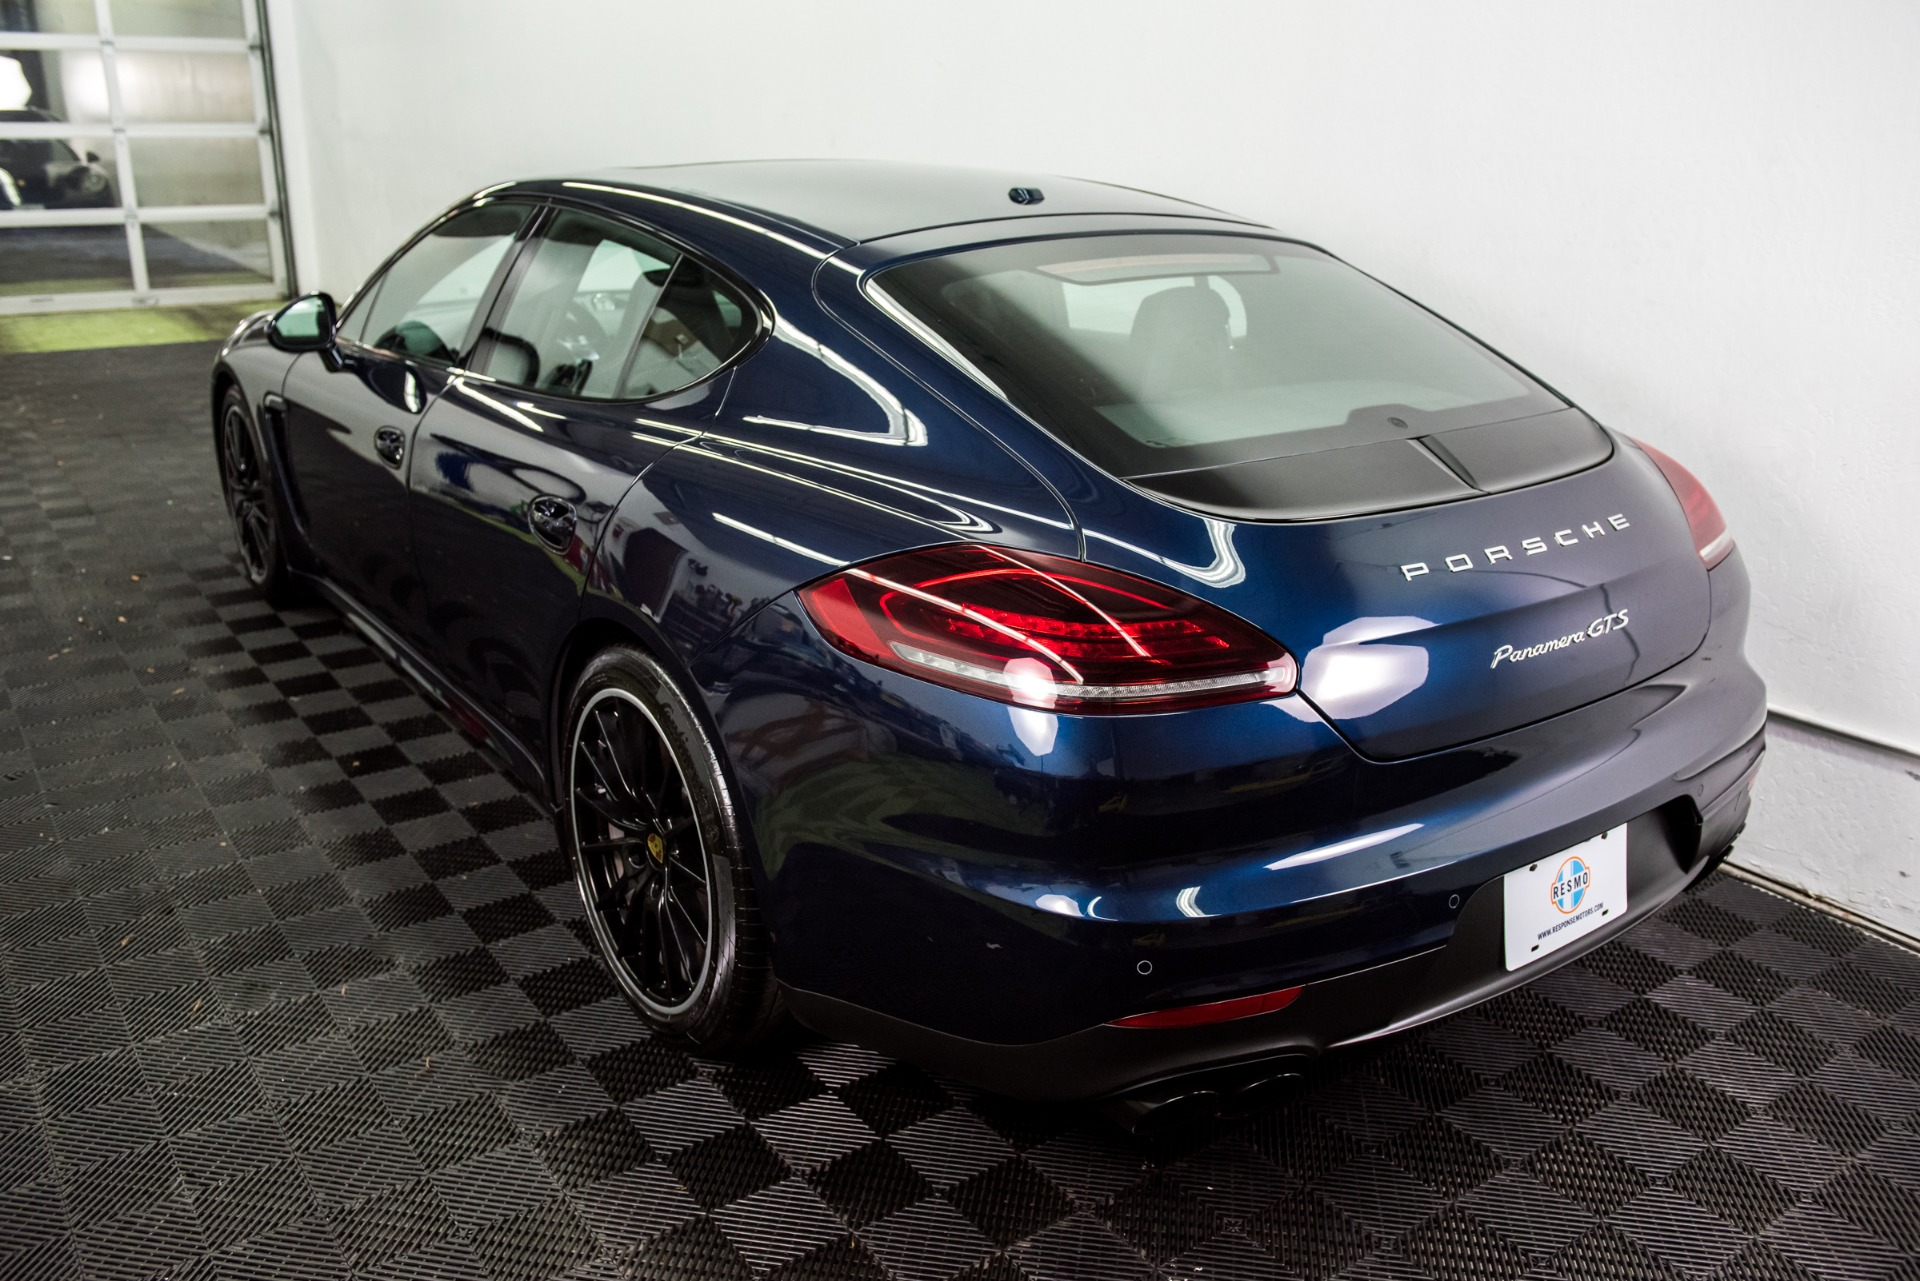 Used 2016 Porsche Panamera GTS Used 2016 Porsche Panamera GTS for sale Sold at Response Motors in Mountain View CA 7